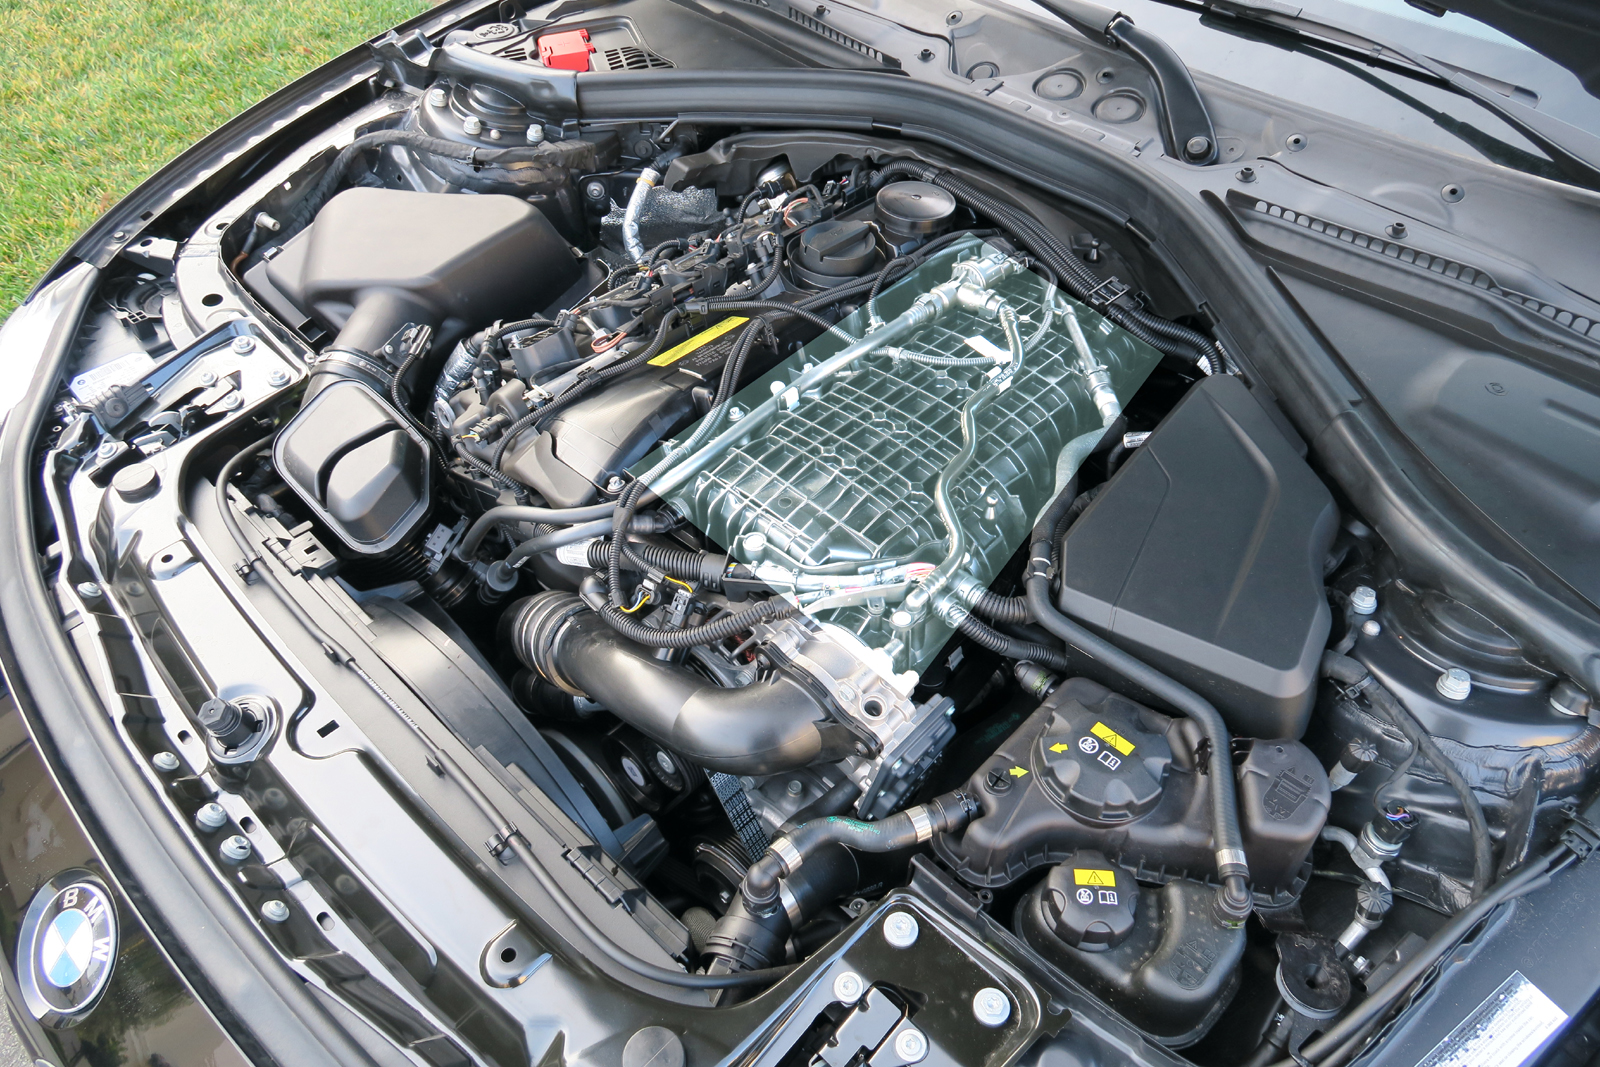 Detailed Analysis The Bmw B58 Inline 6 Cylinder Engine